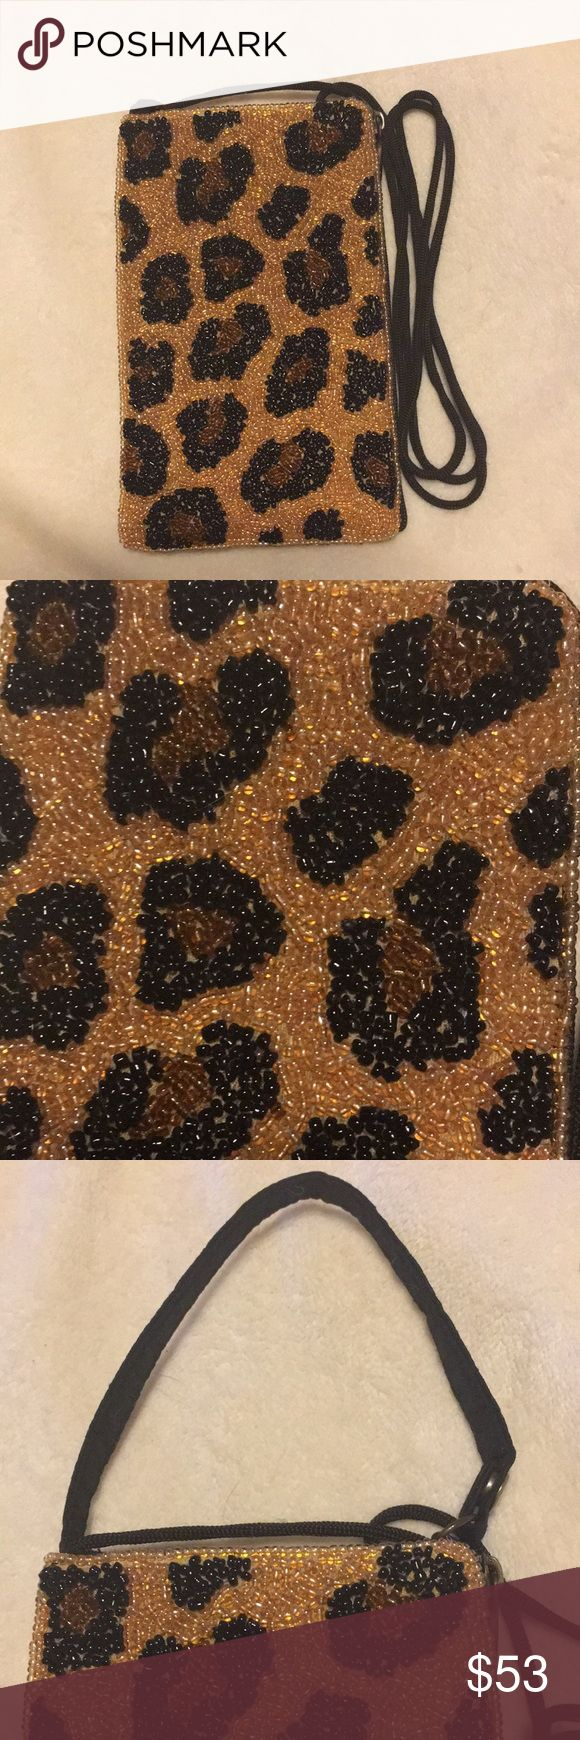 """Bamboo Trading Company beaded animal print cell Beautiful! Beaded animal print cross body cell phone - Fits iPhone plus, side zip for lip stock, money, credit card- Black, brown on gold- NWOT 24"""" hang or 4"""" hang Bamboo Trading Company Bags Crossbody Bags"""